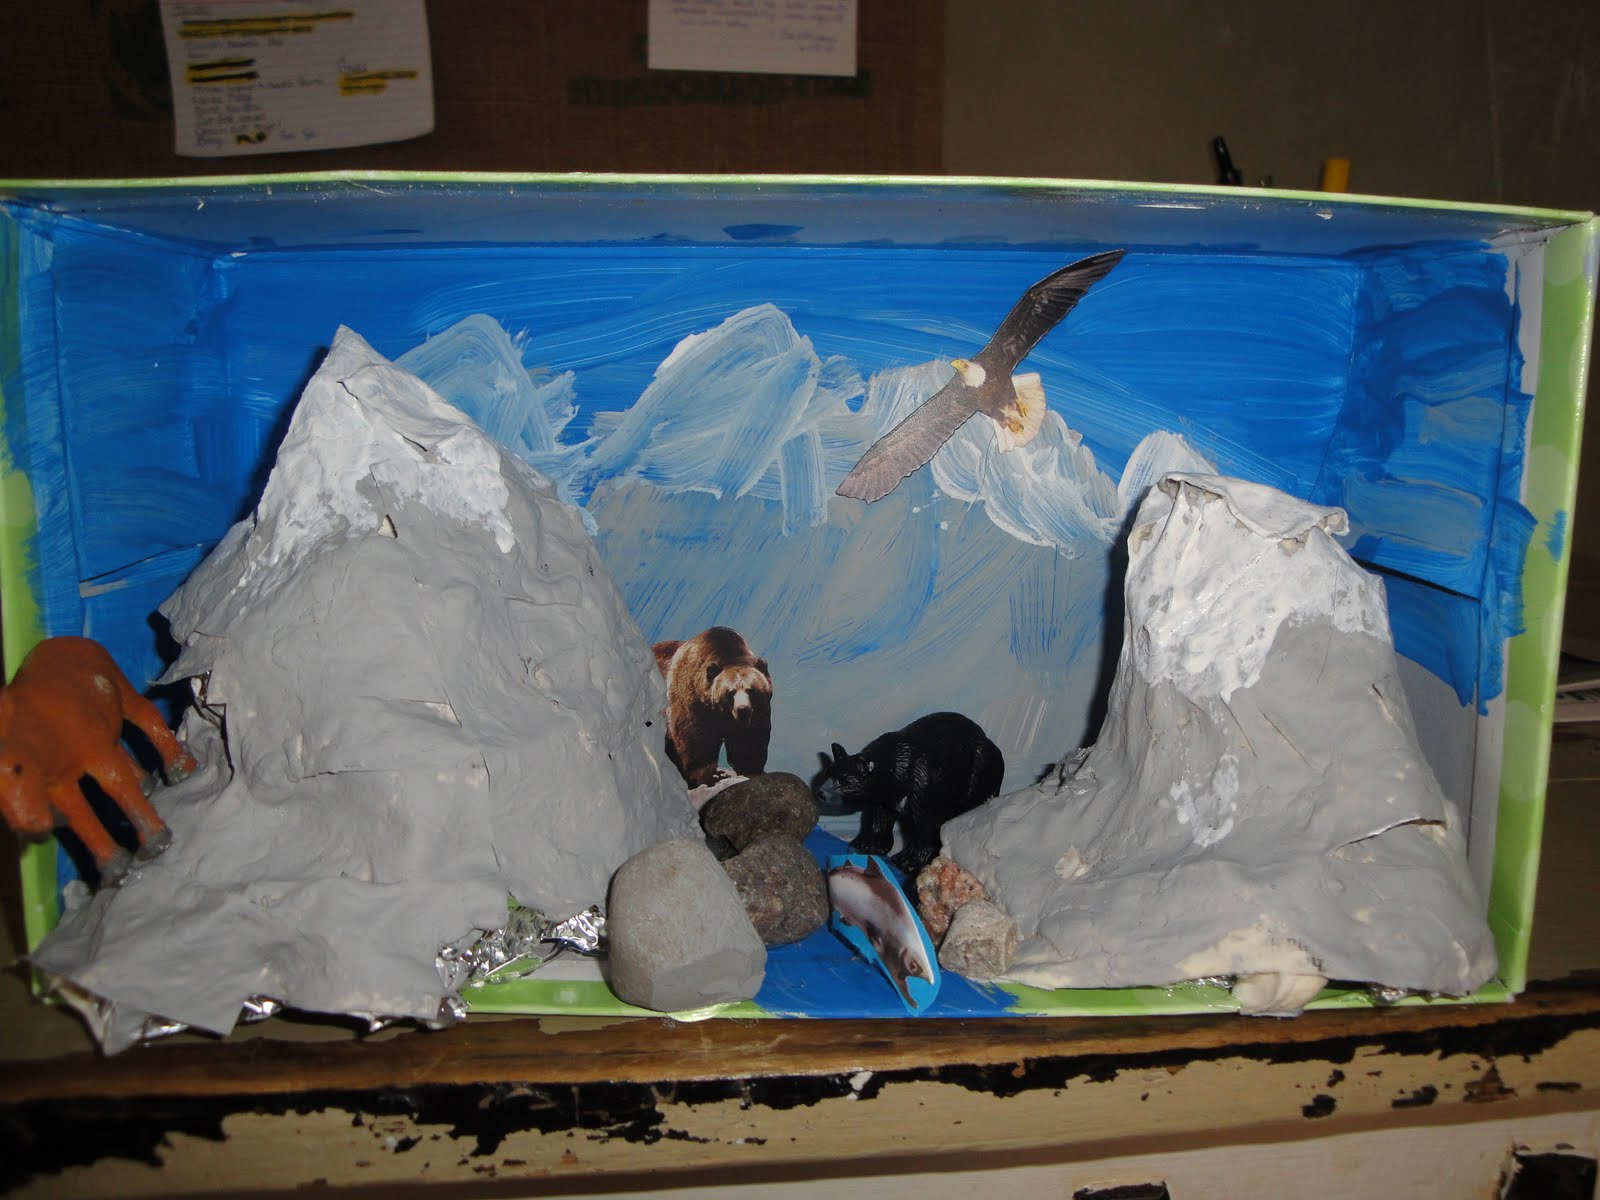 Native American Diorama Ideas http://www.aliciahutchinson.com/2009/11/mountains-and-more-native-americans.html